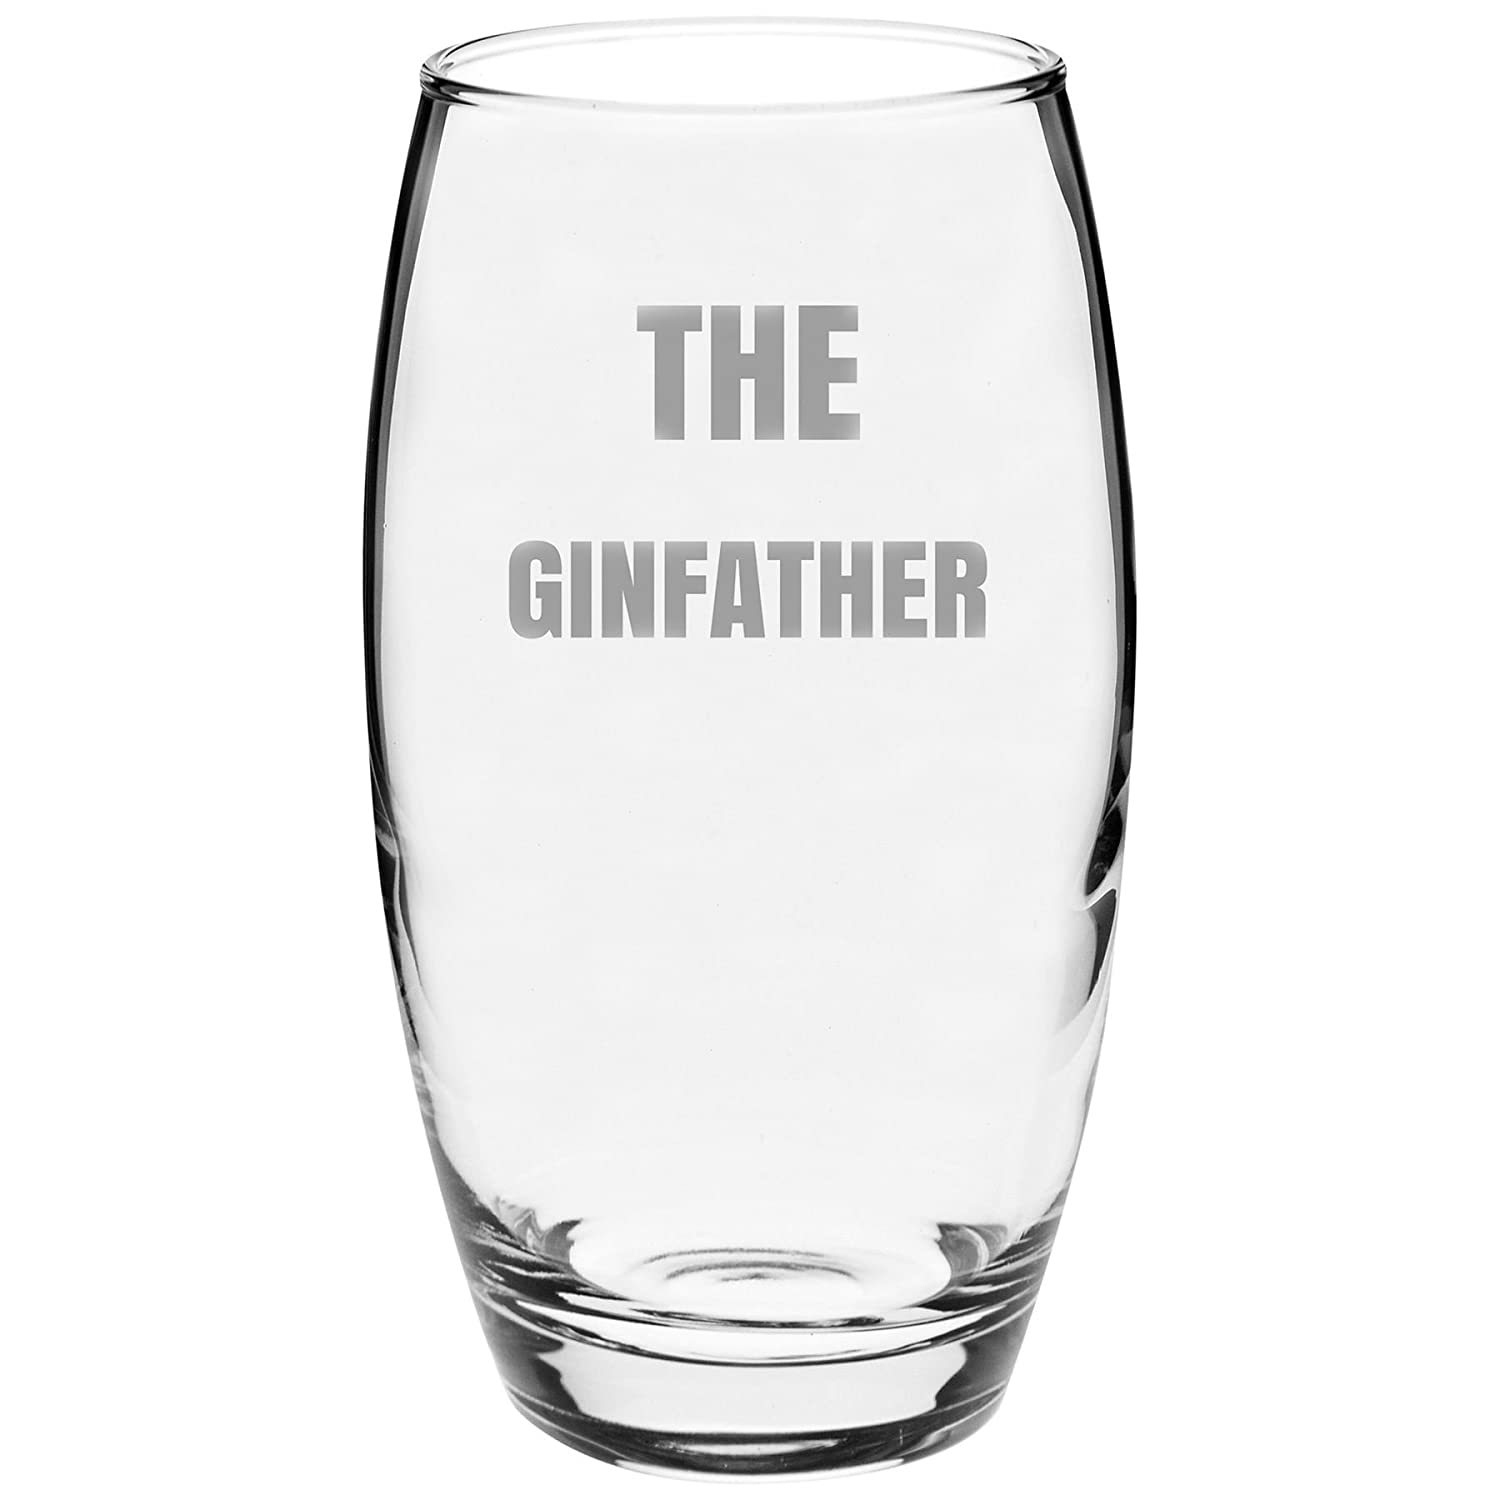 Argon Tableware Engraved Glass Highball Cocktail Tumbler - The Ginfather - 510ml